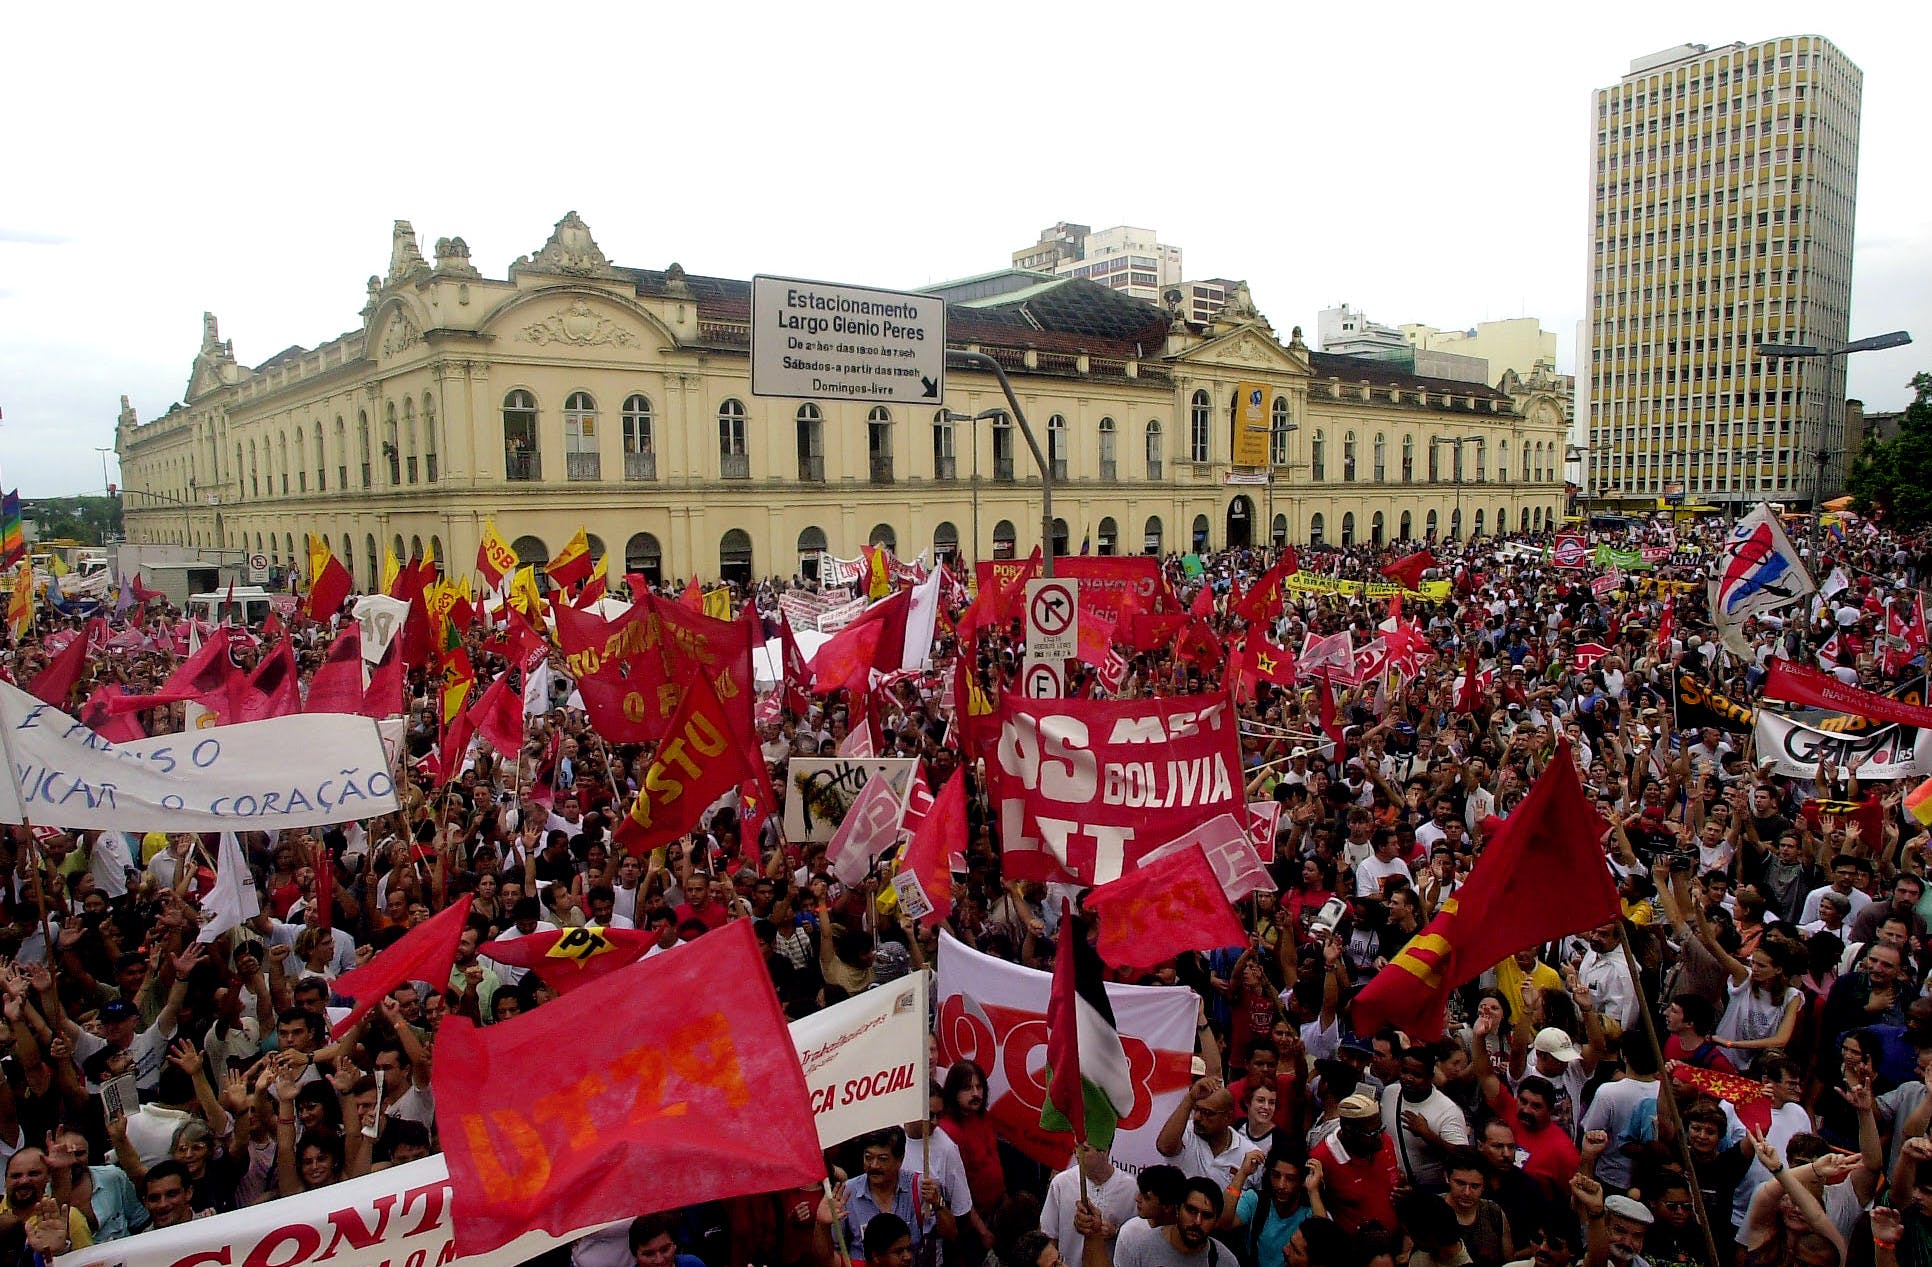 Some 30,000 people gather in Porto Alegre, Brazil, Thursday, Jan. 31, 2002 for a march to officially inaugurate the five-day World Social Forum of some 40,000 participants.(AP Photo/Douglas Engle)